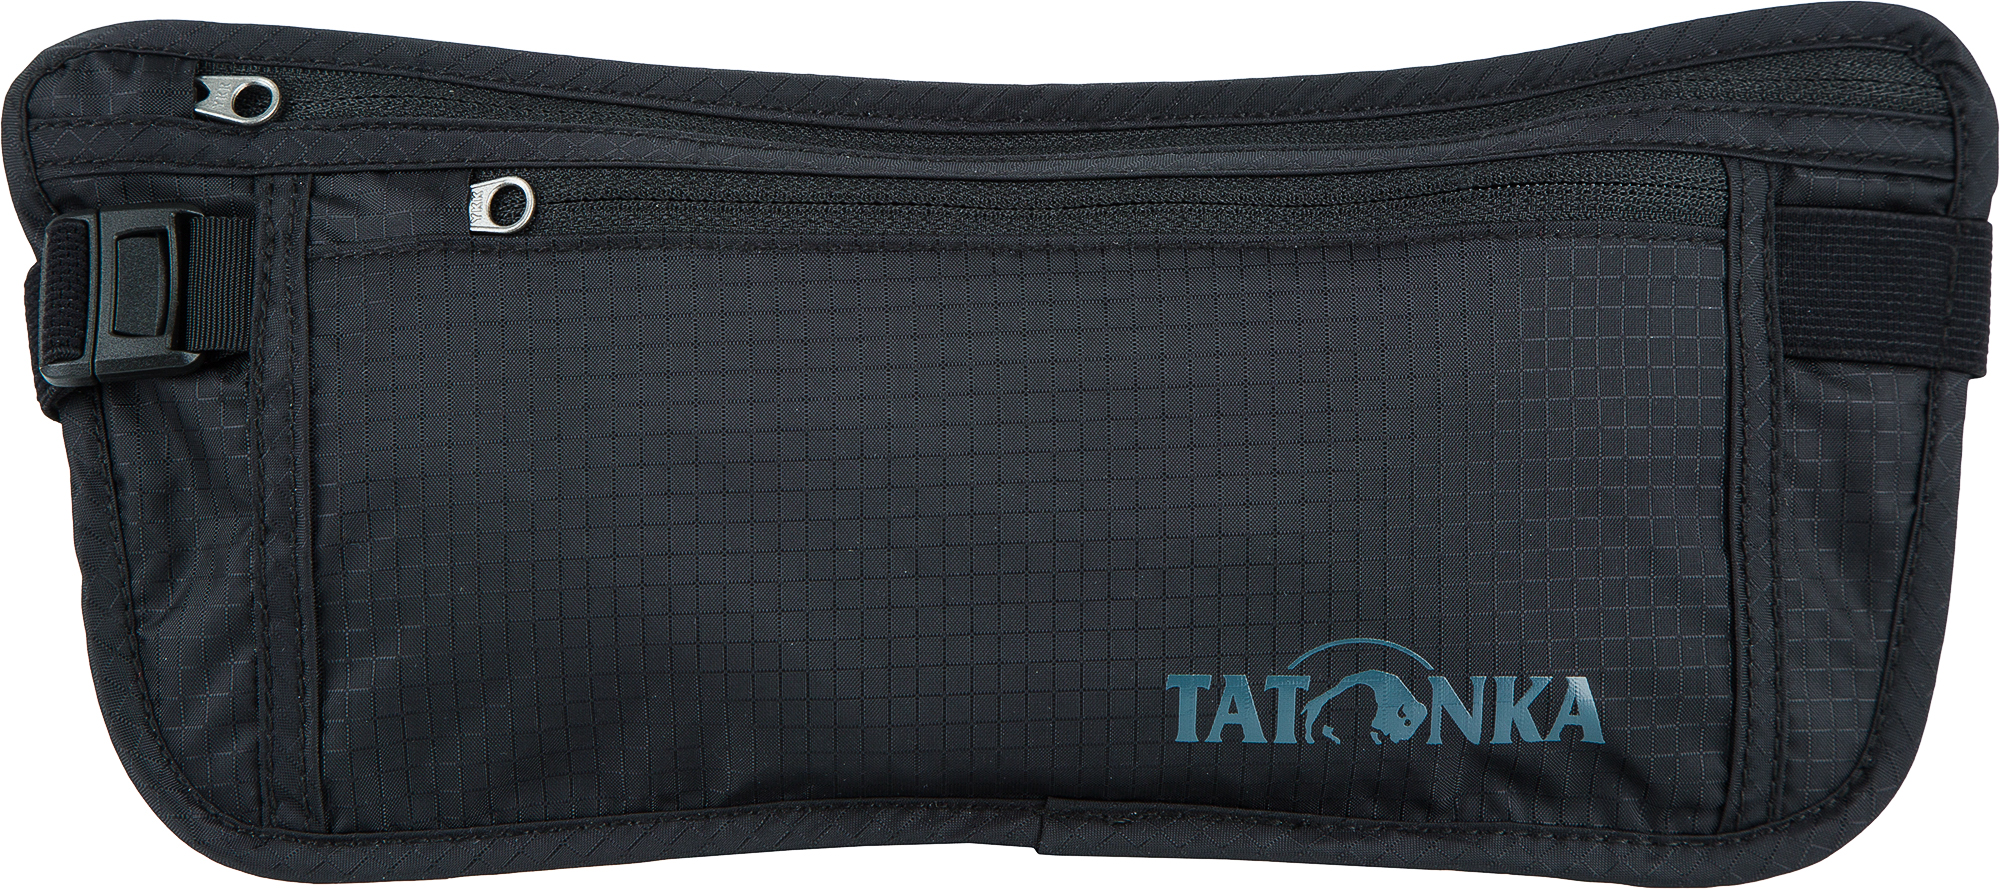 Tatonka Кошелек Tatonka SKIN MONEY BELT цена